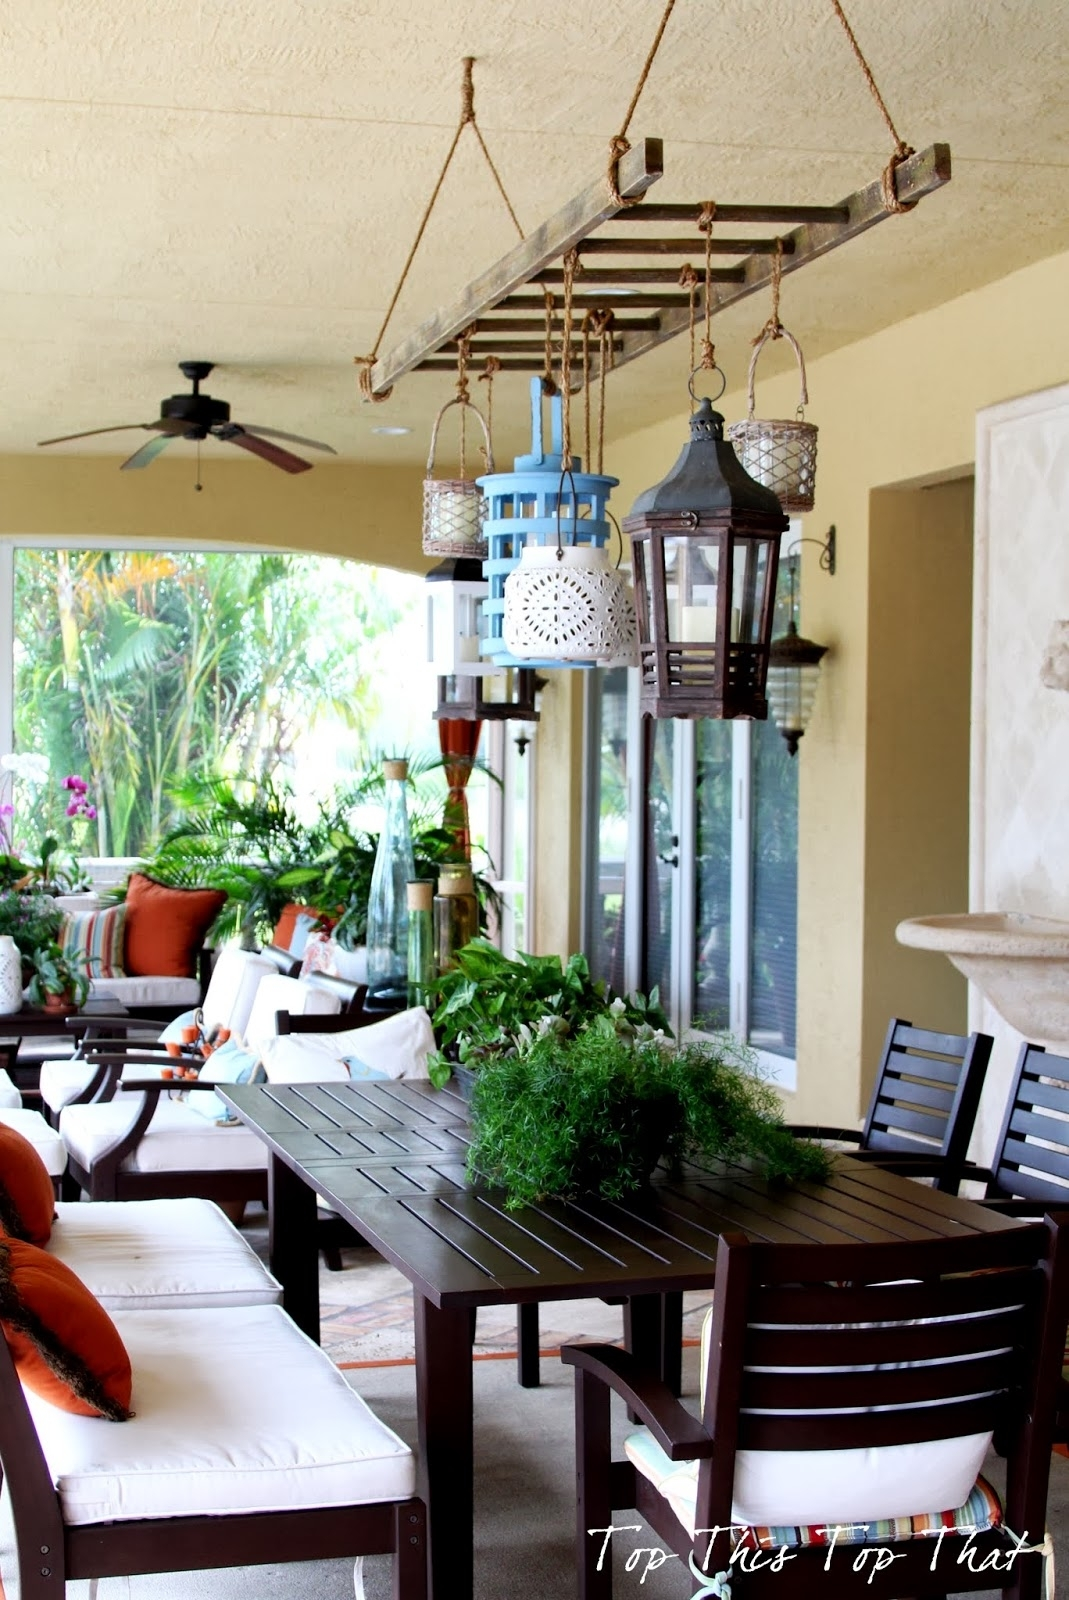 Outdoor Hanging Lanterns For Patio Decorate Ideas Simple At Lantern For Outdoor Hanging Lanterns For Patio (View 2 of 15)